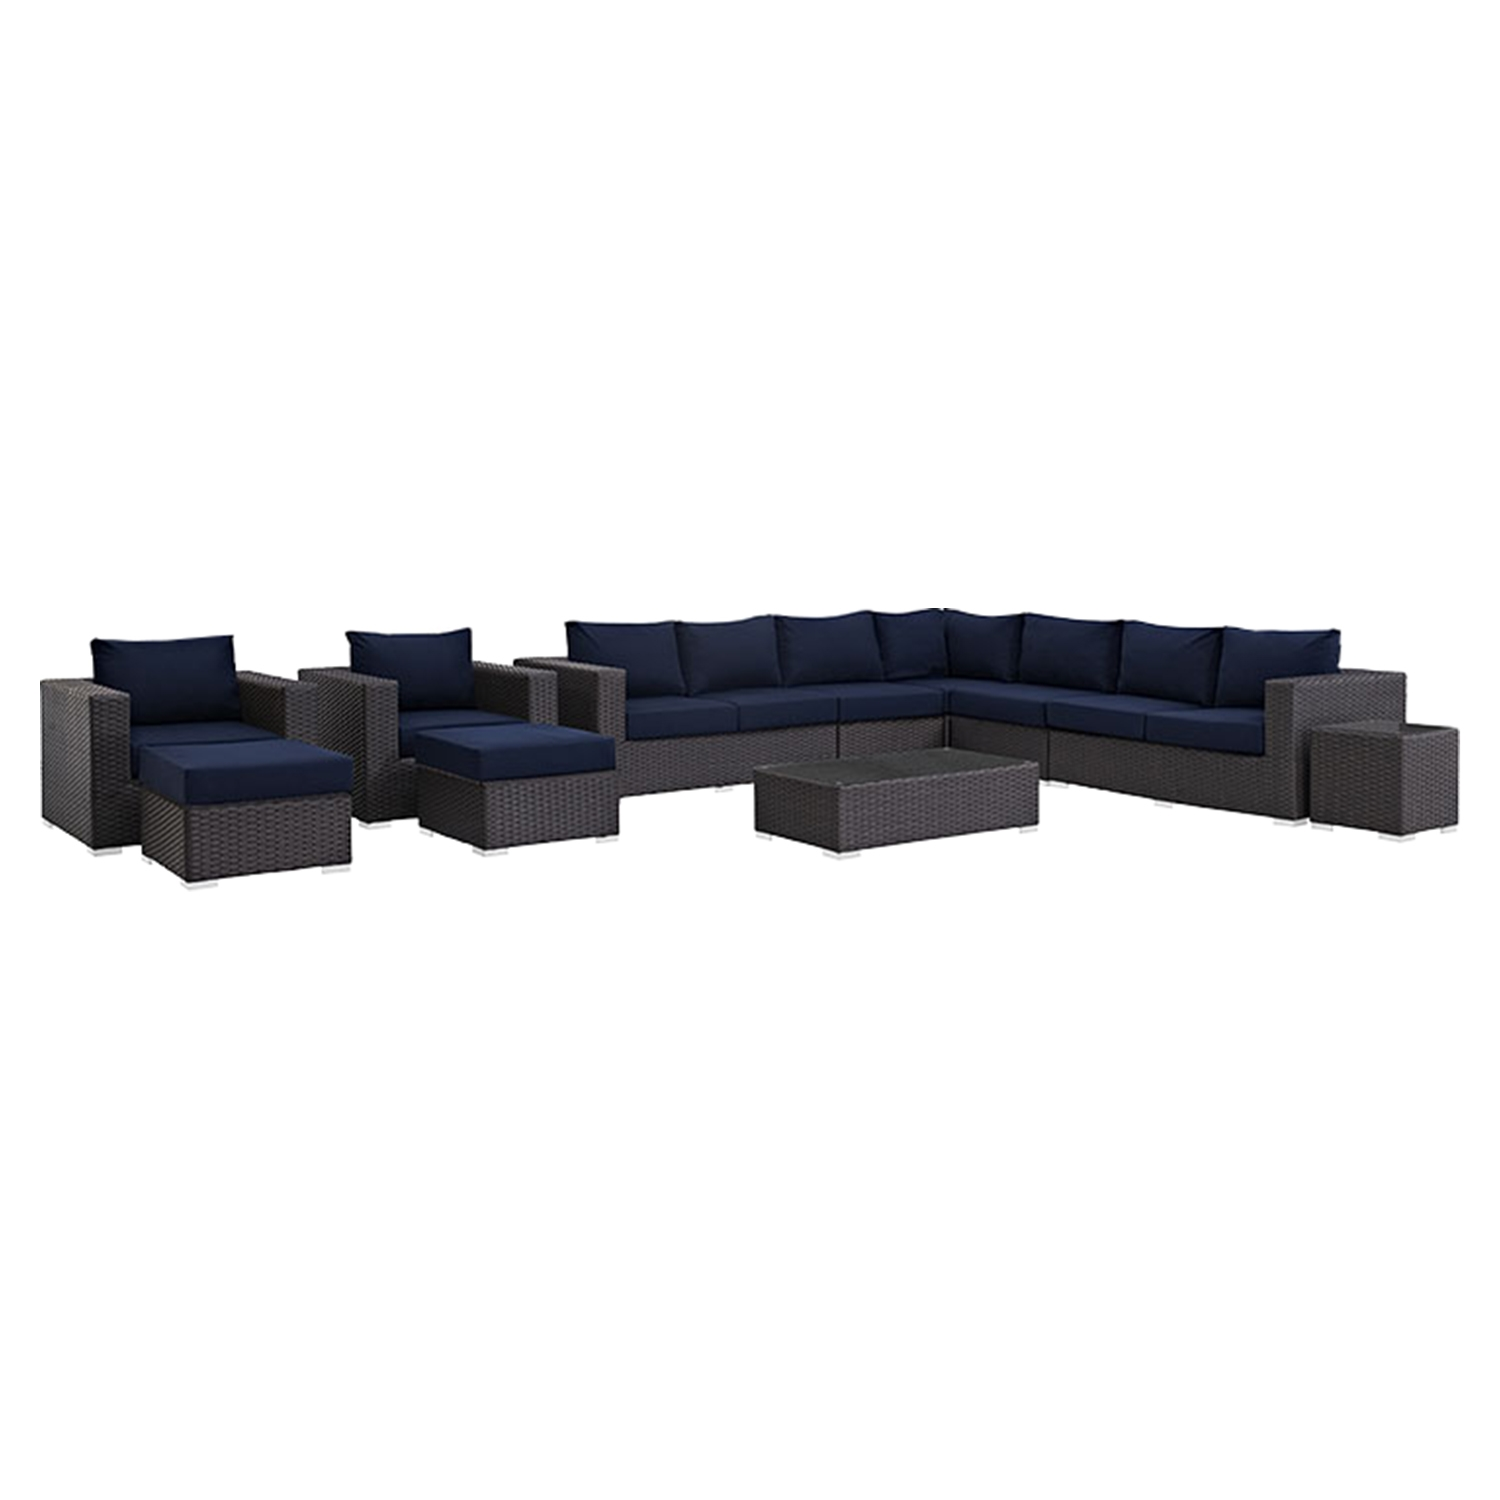 Sojourn 11 Pieces Outdoor Patio Sectional Set - Sunbrella Canvas Navy - EEI-1885-CHC-NAV-SET